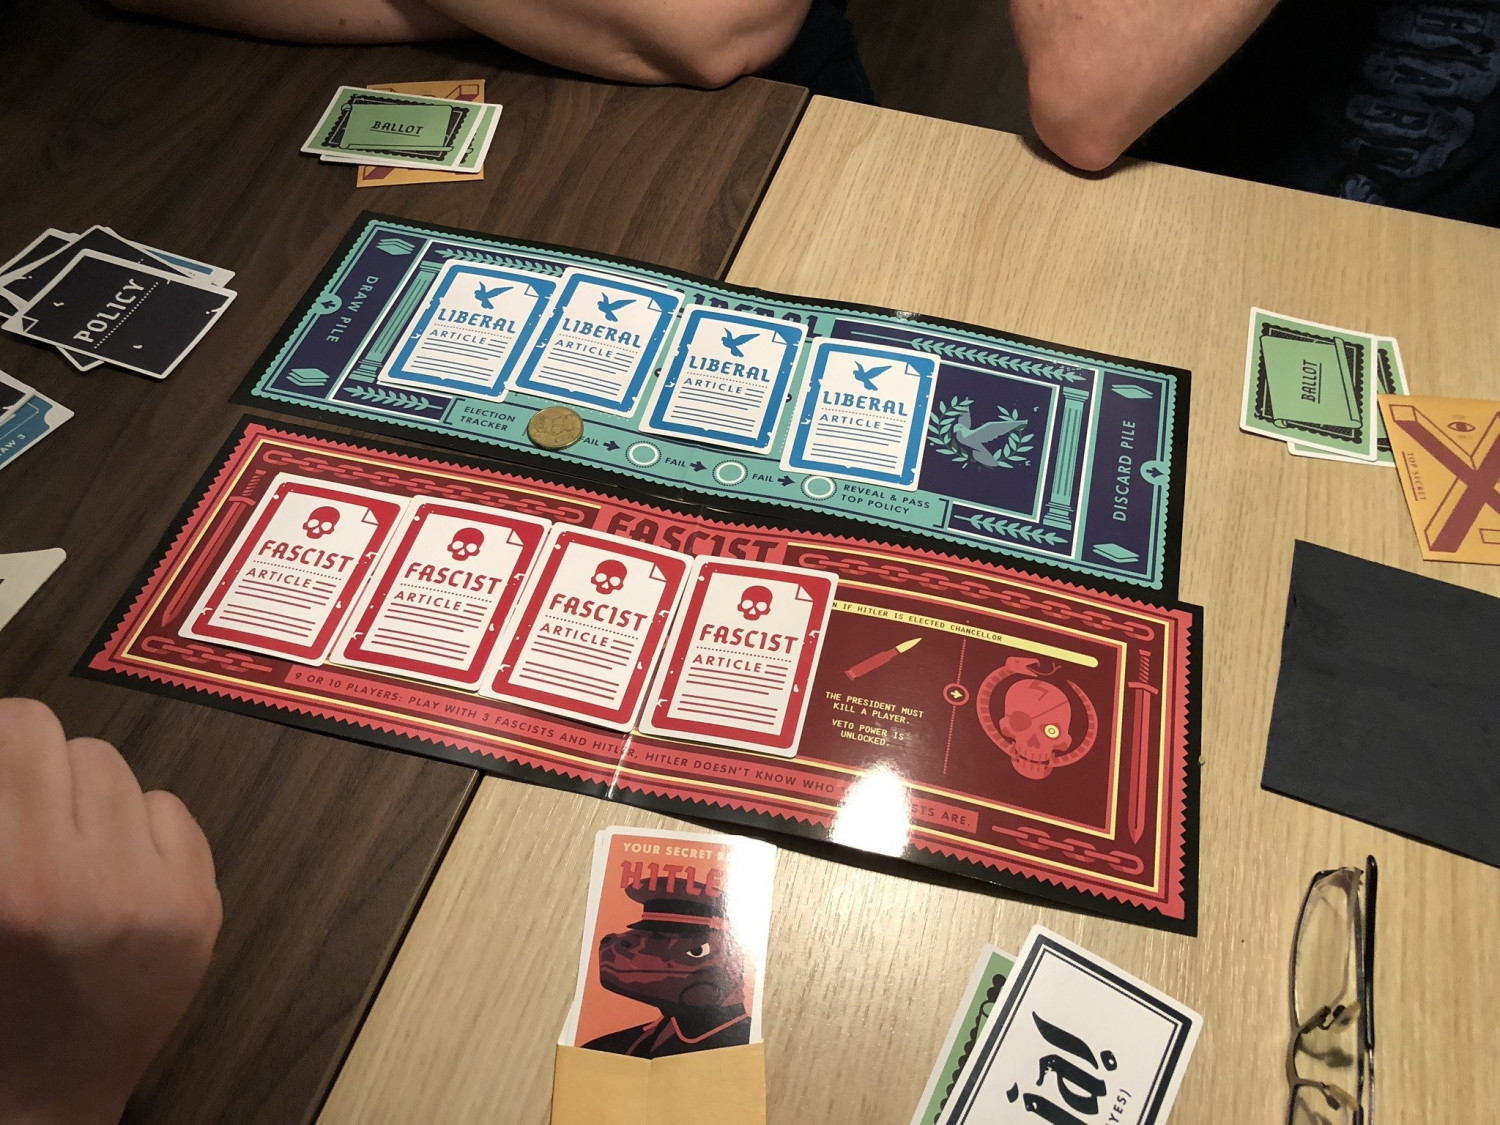 Top Free Games To Play Online With Friends To While The Quarantine Woes Away Geek Culture